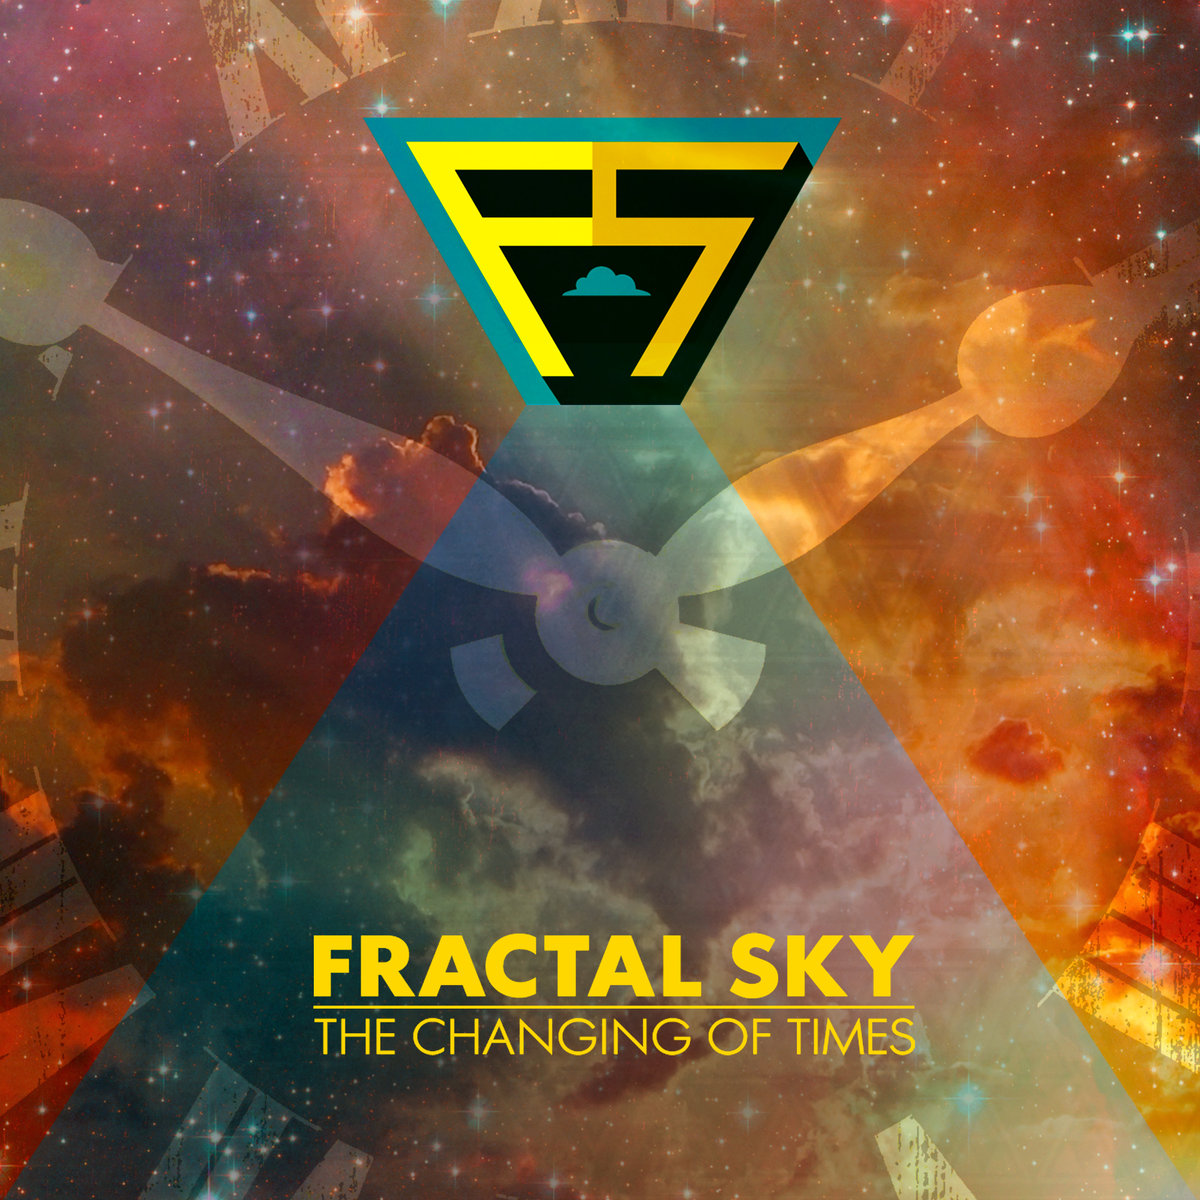 Fractal Sky - The Changing of Times